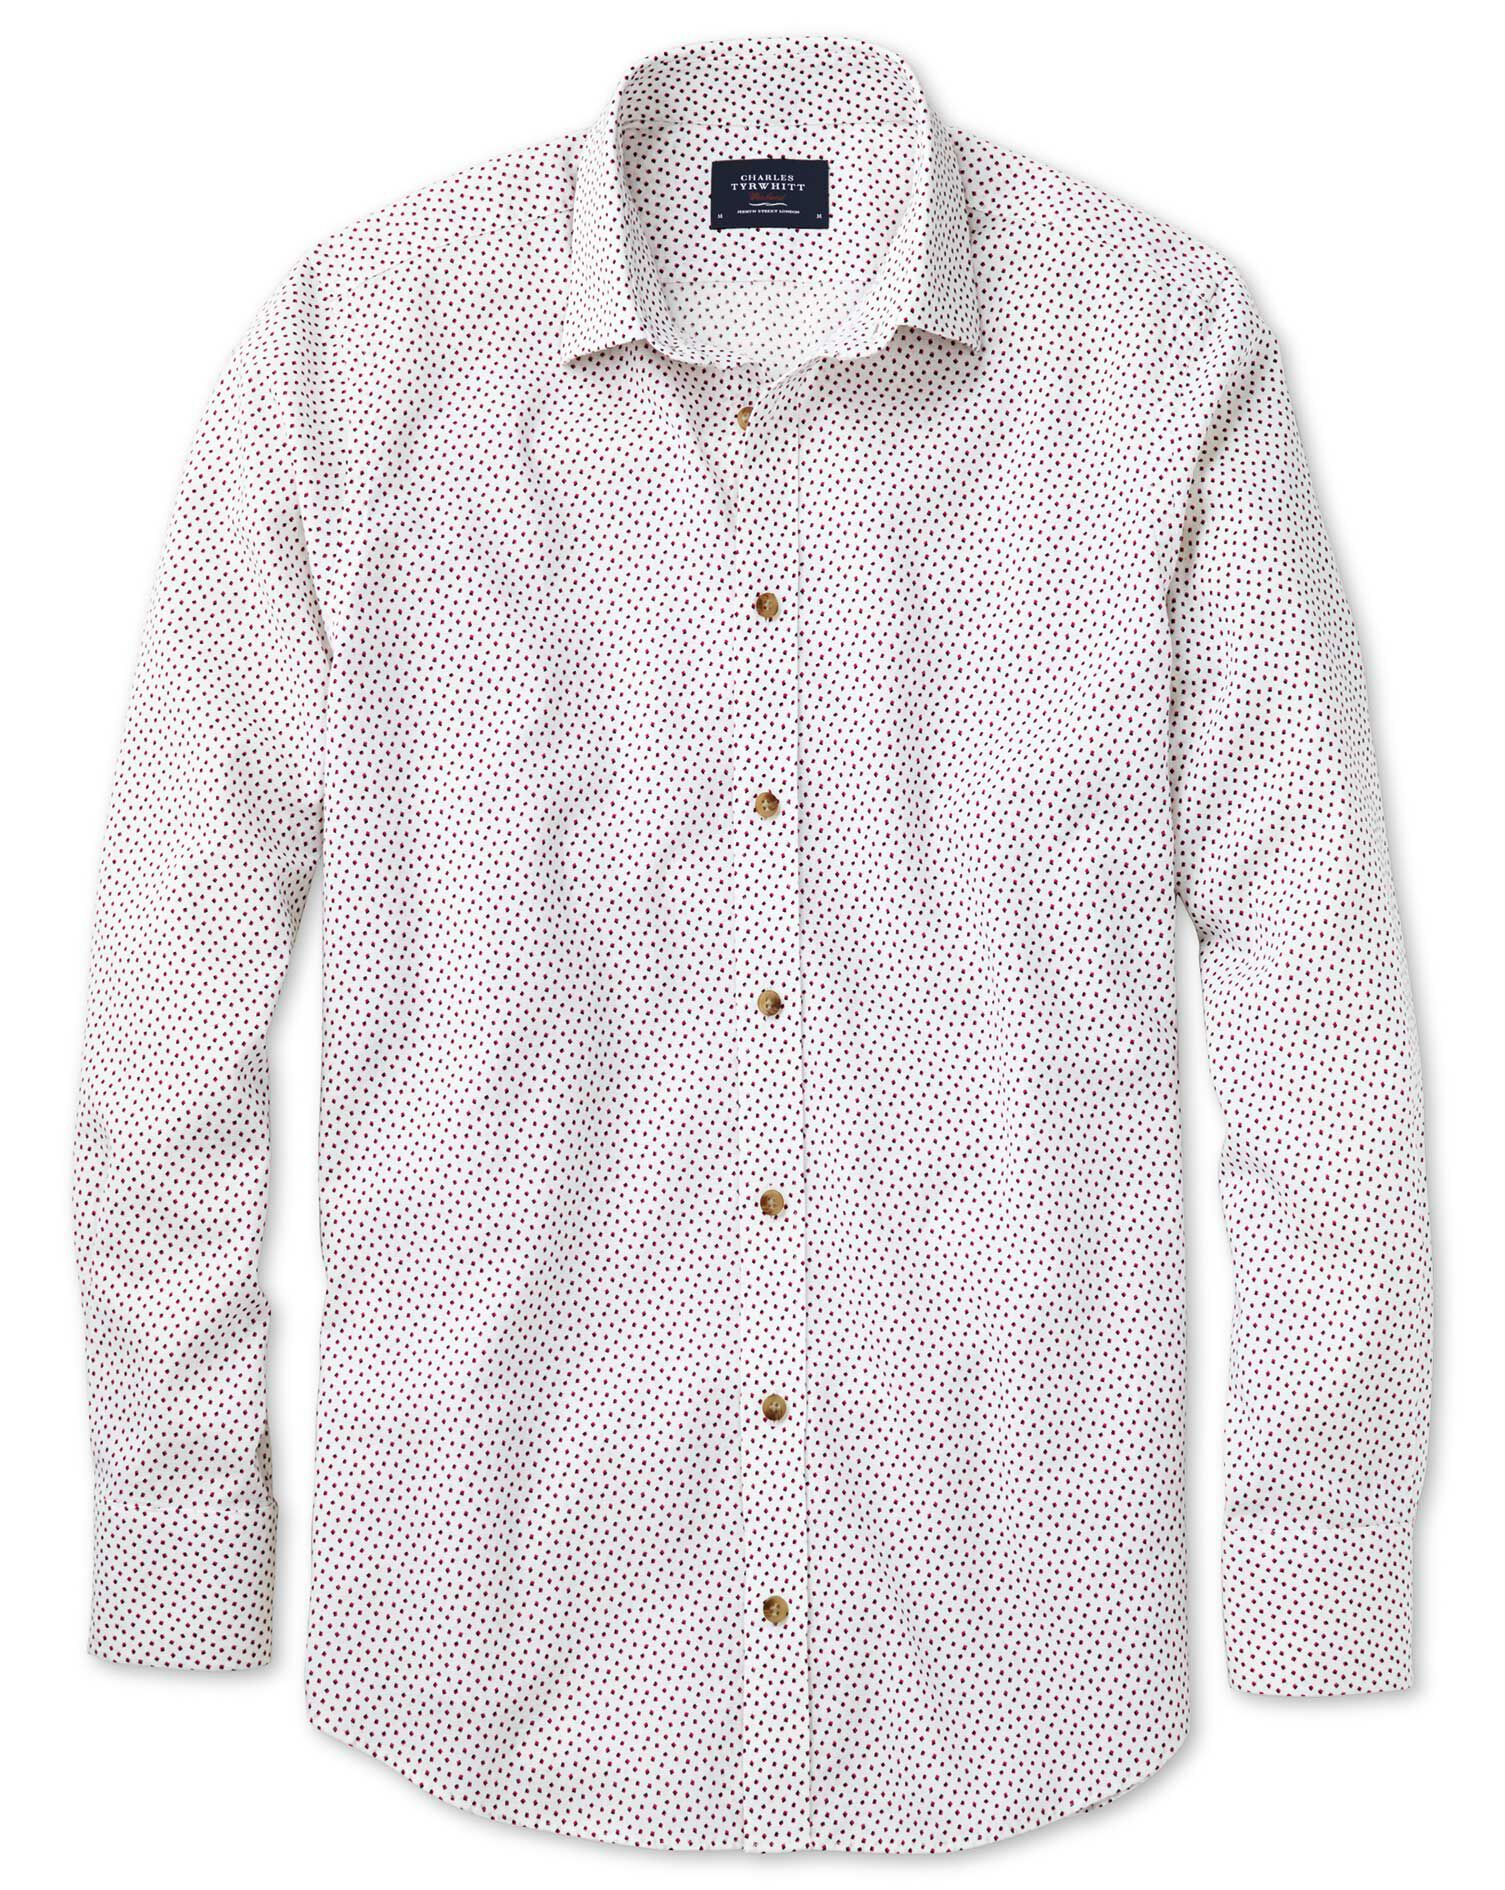 Extra Slim Fit White and Pink Square Print Cotton Shirt Single Cuff Size Small by Charles Tyrwhitt